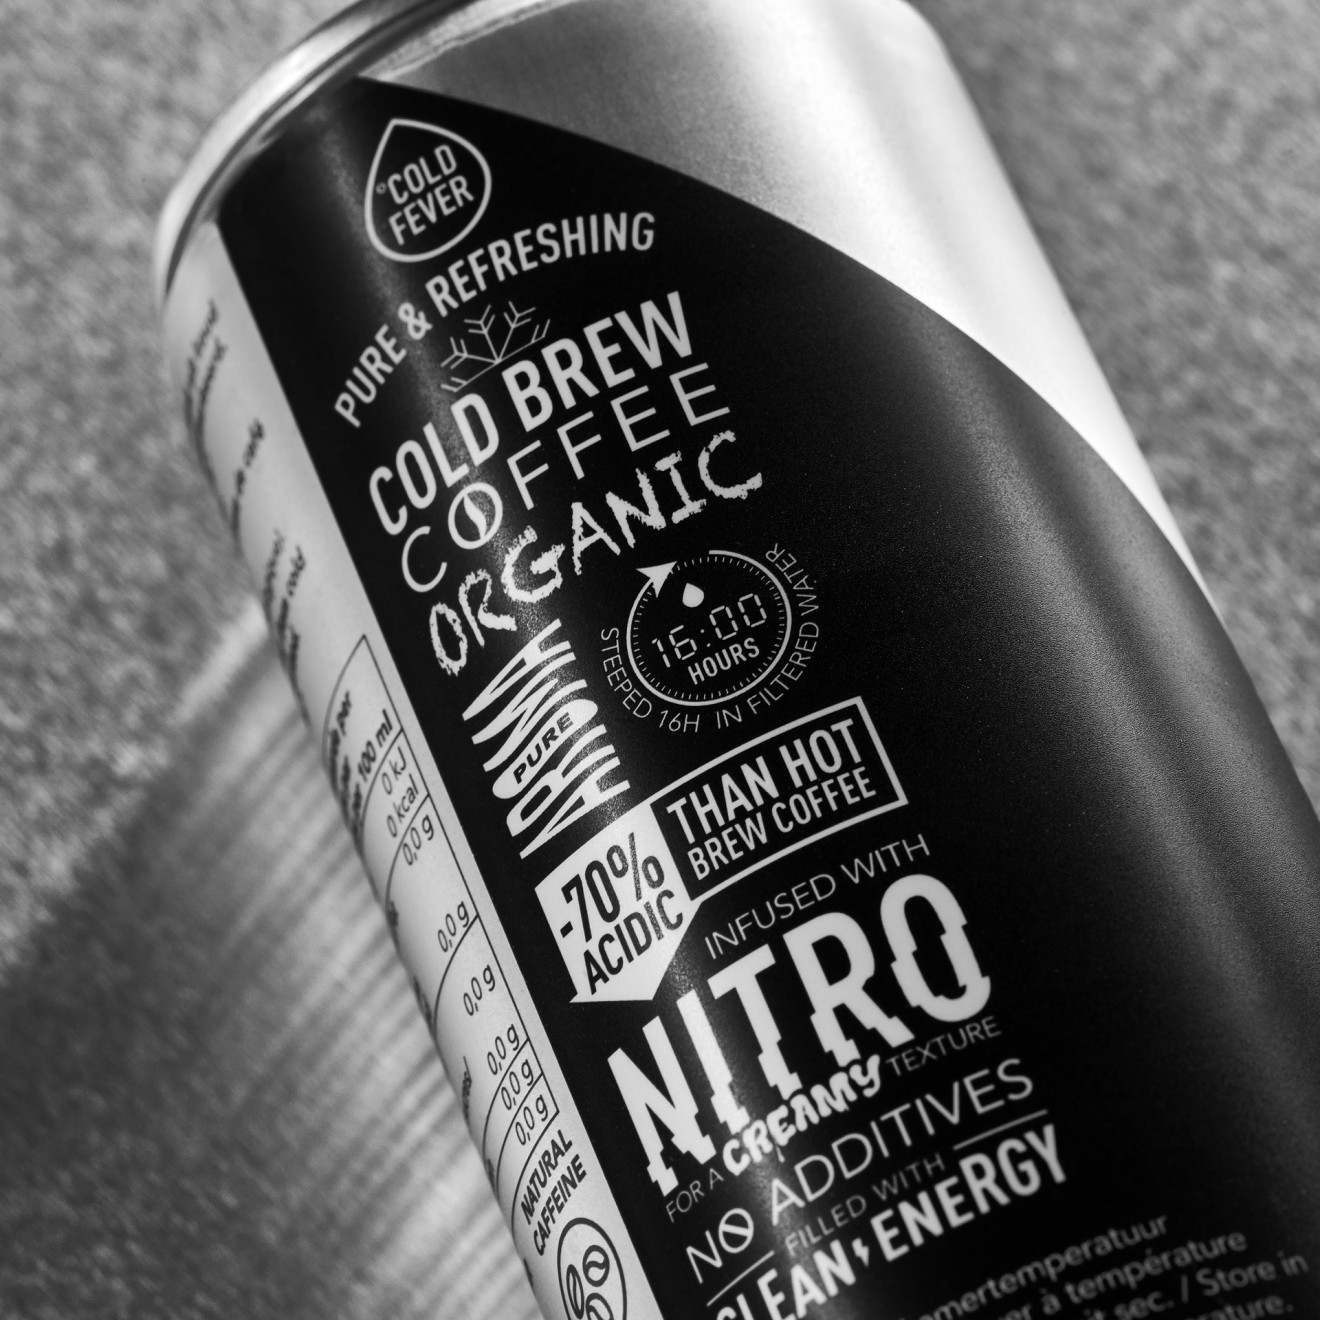 Quatre Mains package design - nitro, brewed, can, coffee